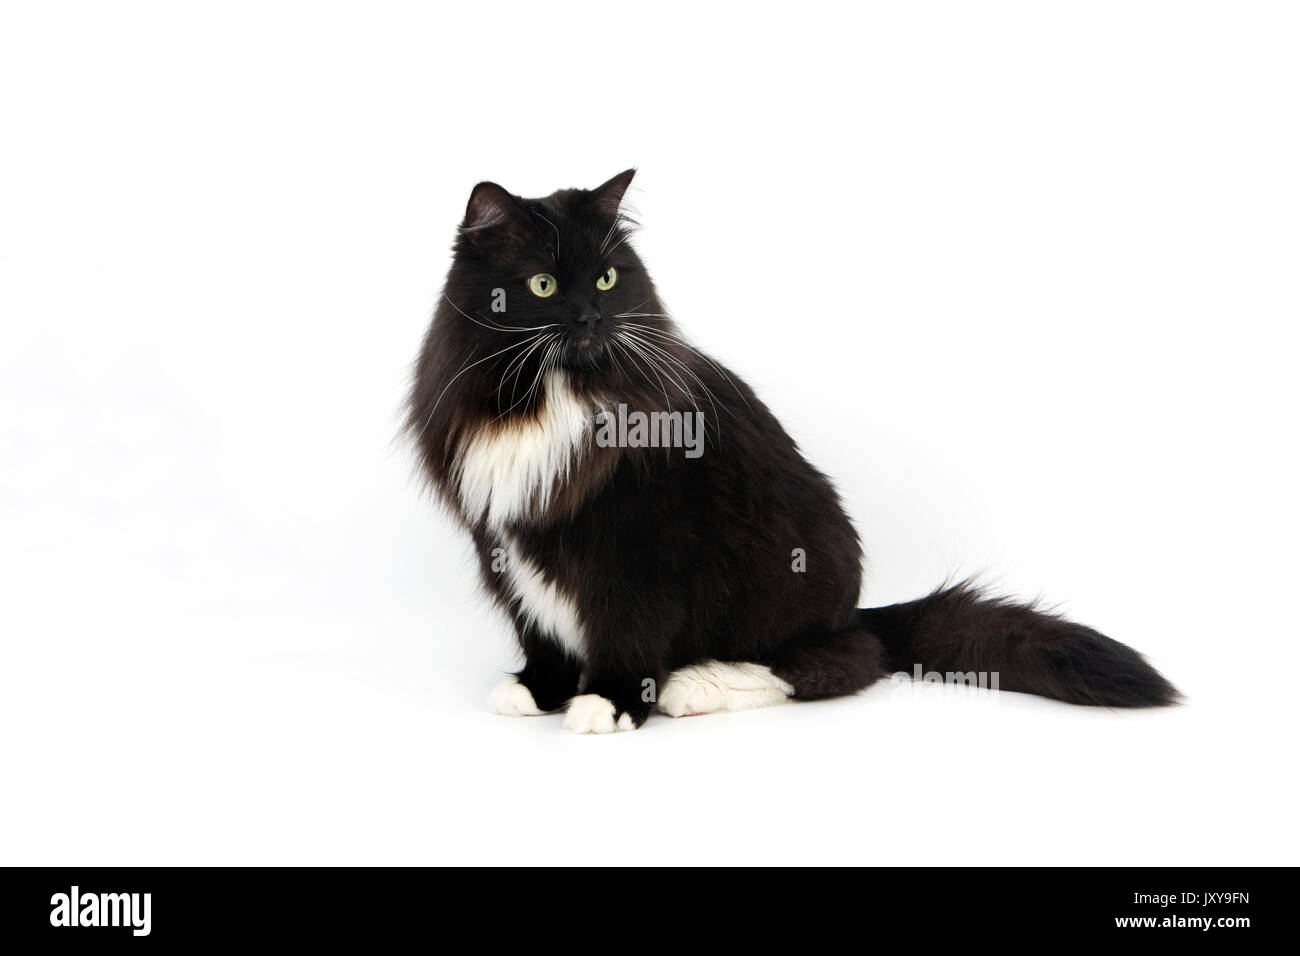 BLACK AND WHITE SIBERIAN CAT, FEMALE AGAINST WHITE BACKGROUND - Stock Image